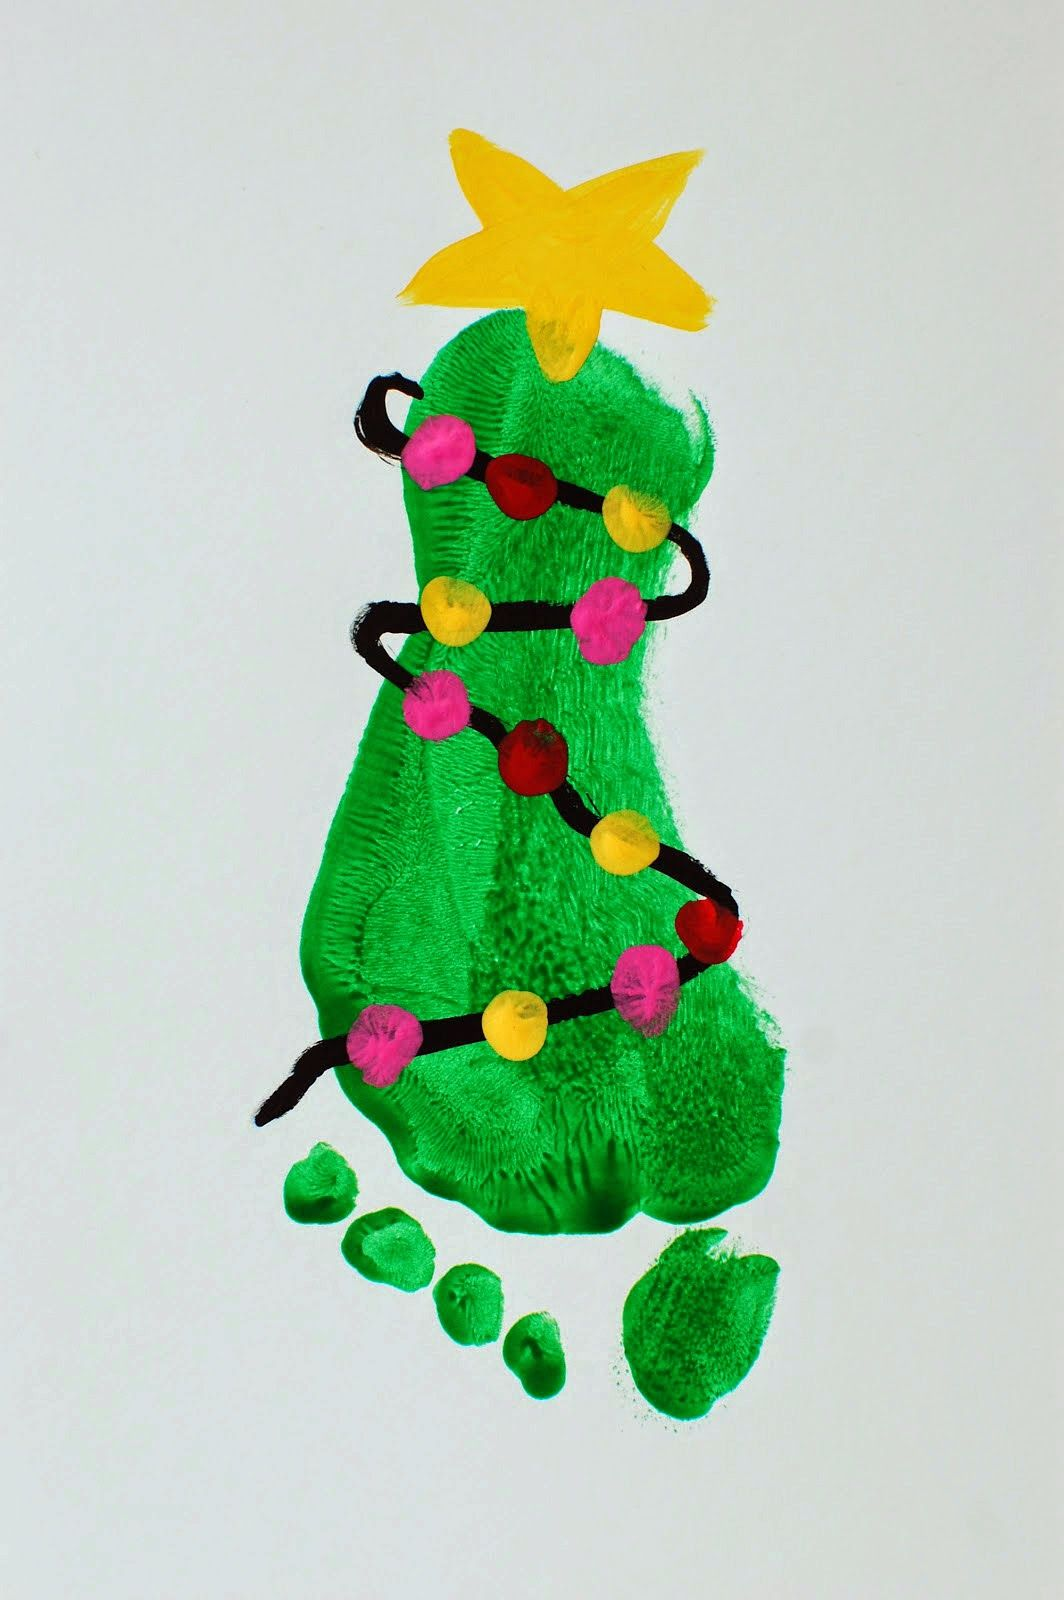 Christmas Art And Craft Ideas For Preschoolers Part - 49: Preschool Arts And Crafts Ideas For Christmas - Christmas Art And Crafts  Ideas - Best Craft Example With Christmas Art Projects For Preschoolers  Wall Decal